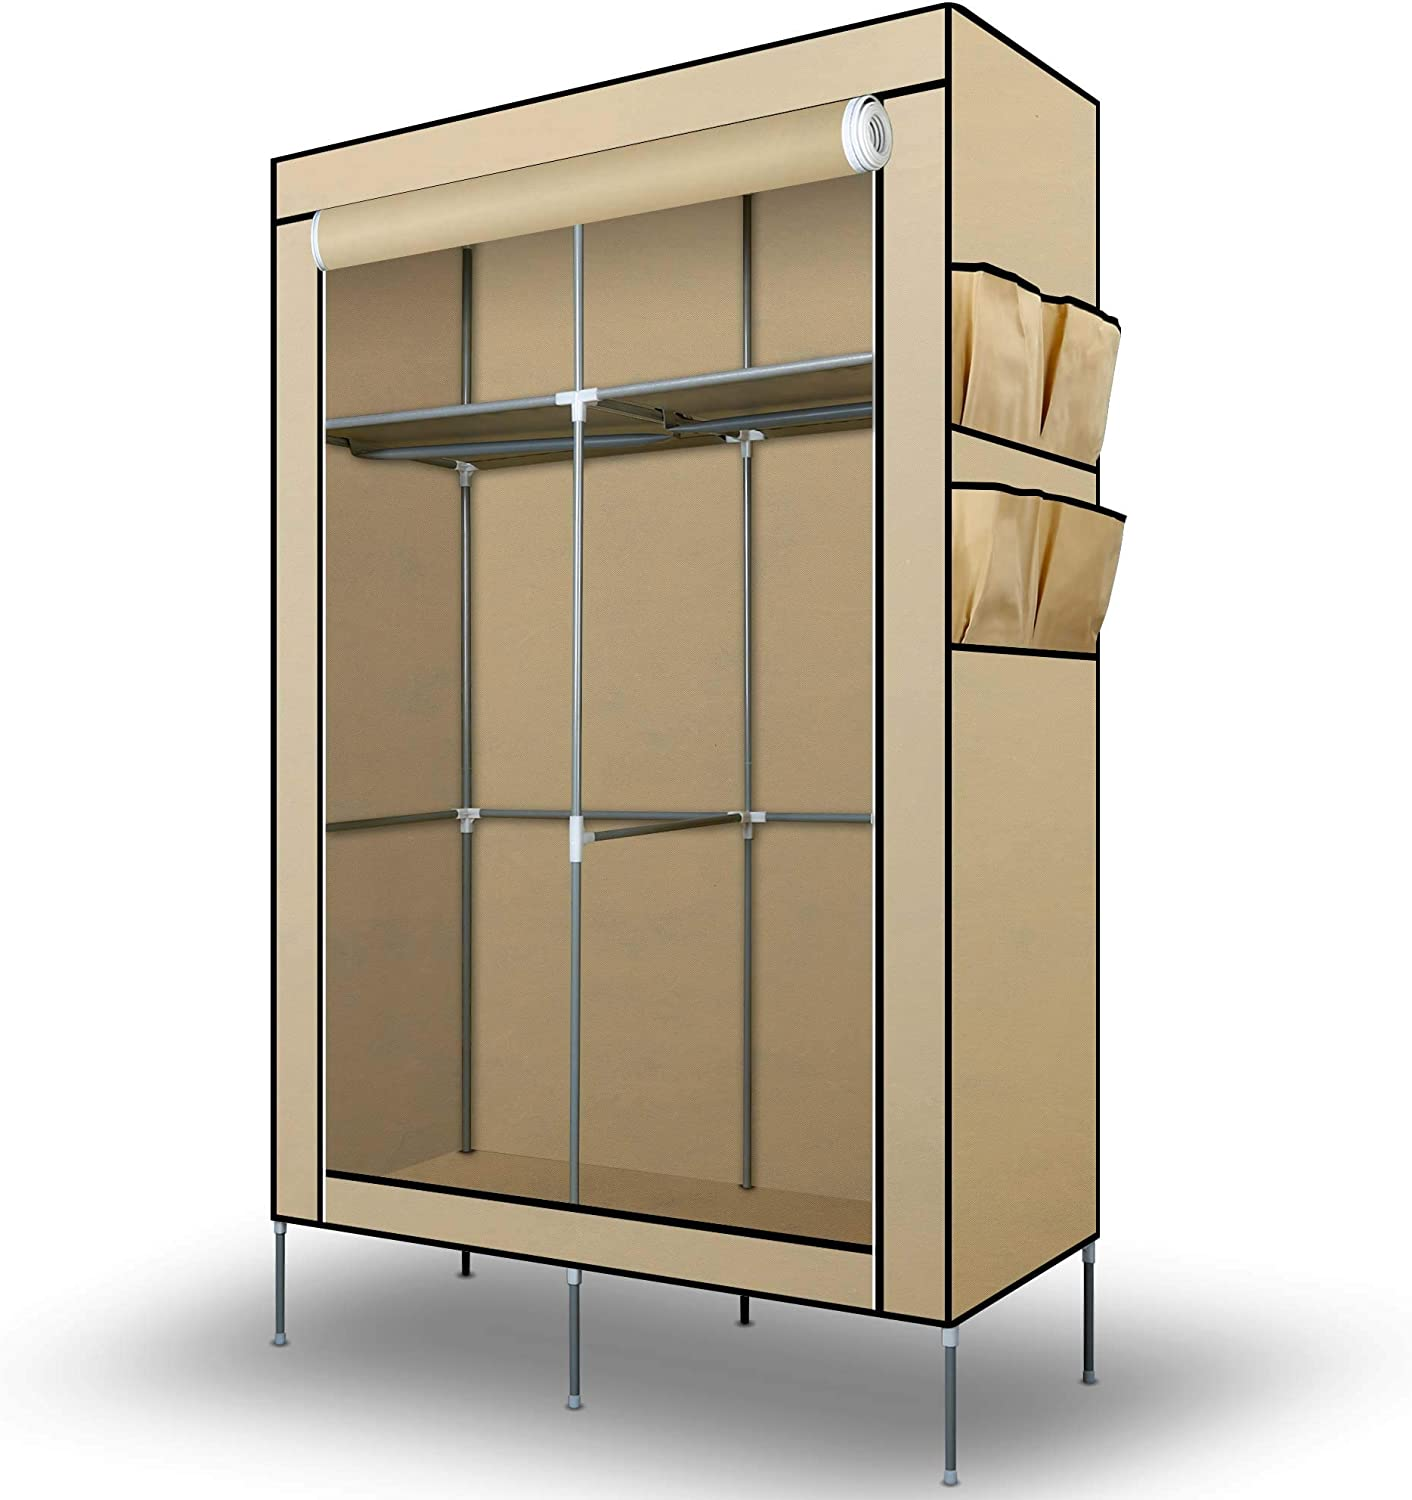 Intirilife Fabric Wardrobe 108x45x170 cm in CREAM – Lockable Canvas Folding Closet with Side Pockets, Zipper and Hanging Rail – Foldable Non-Woven Textile Storage